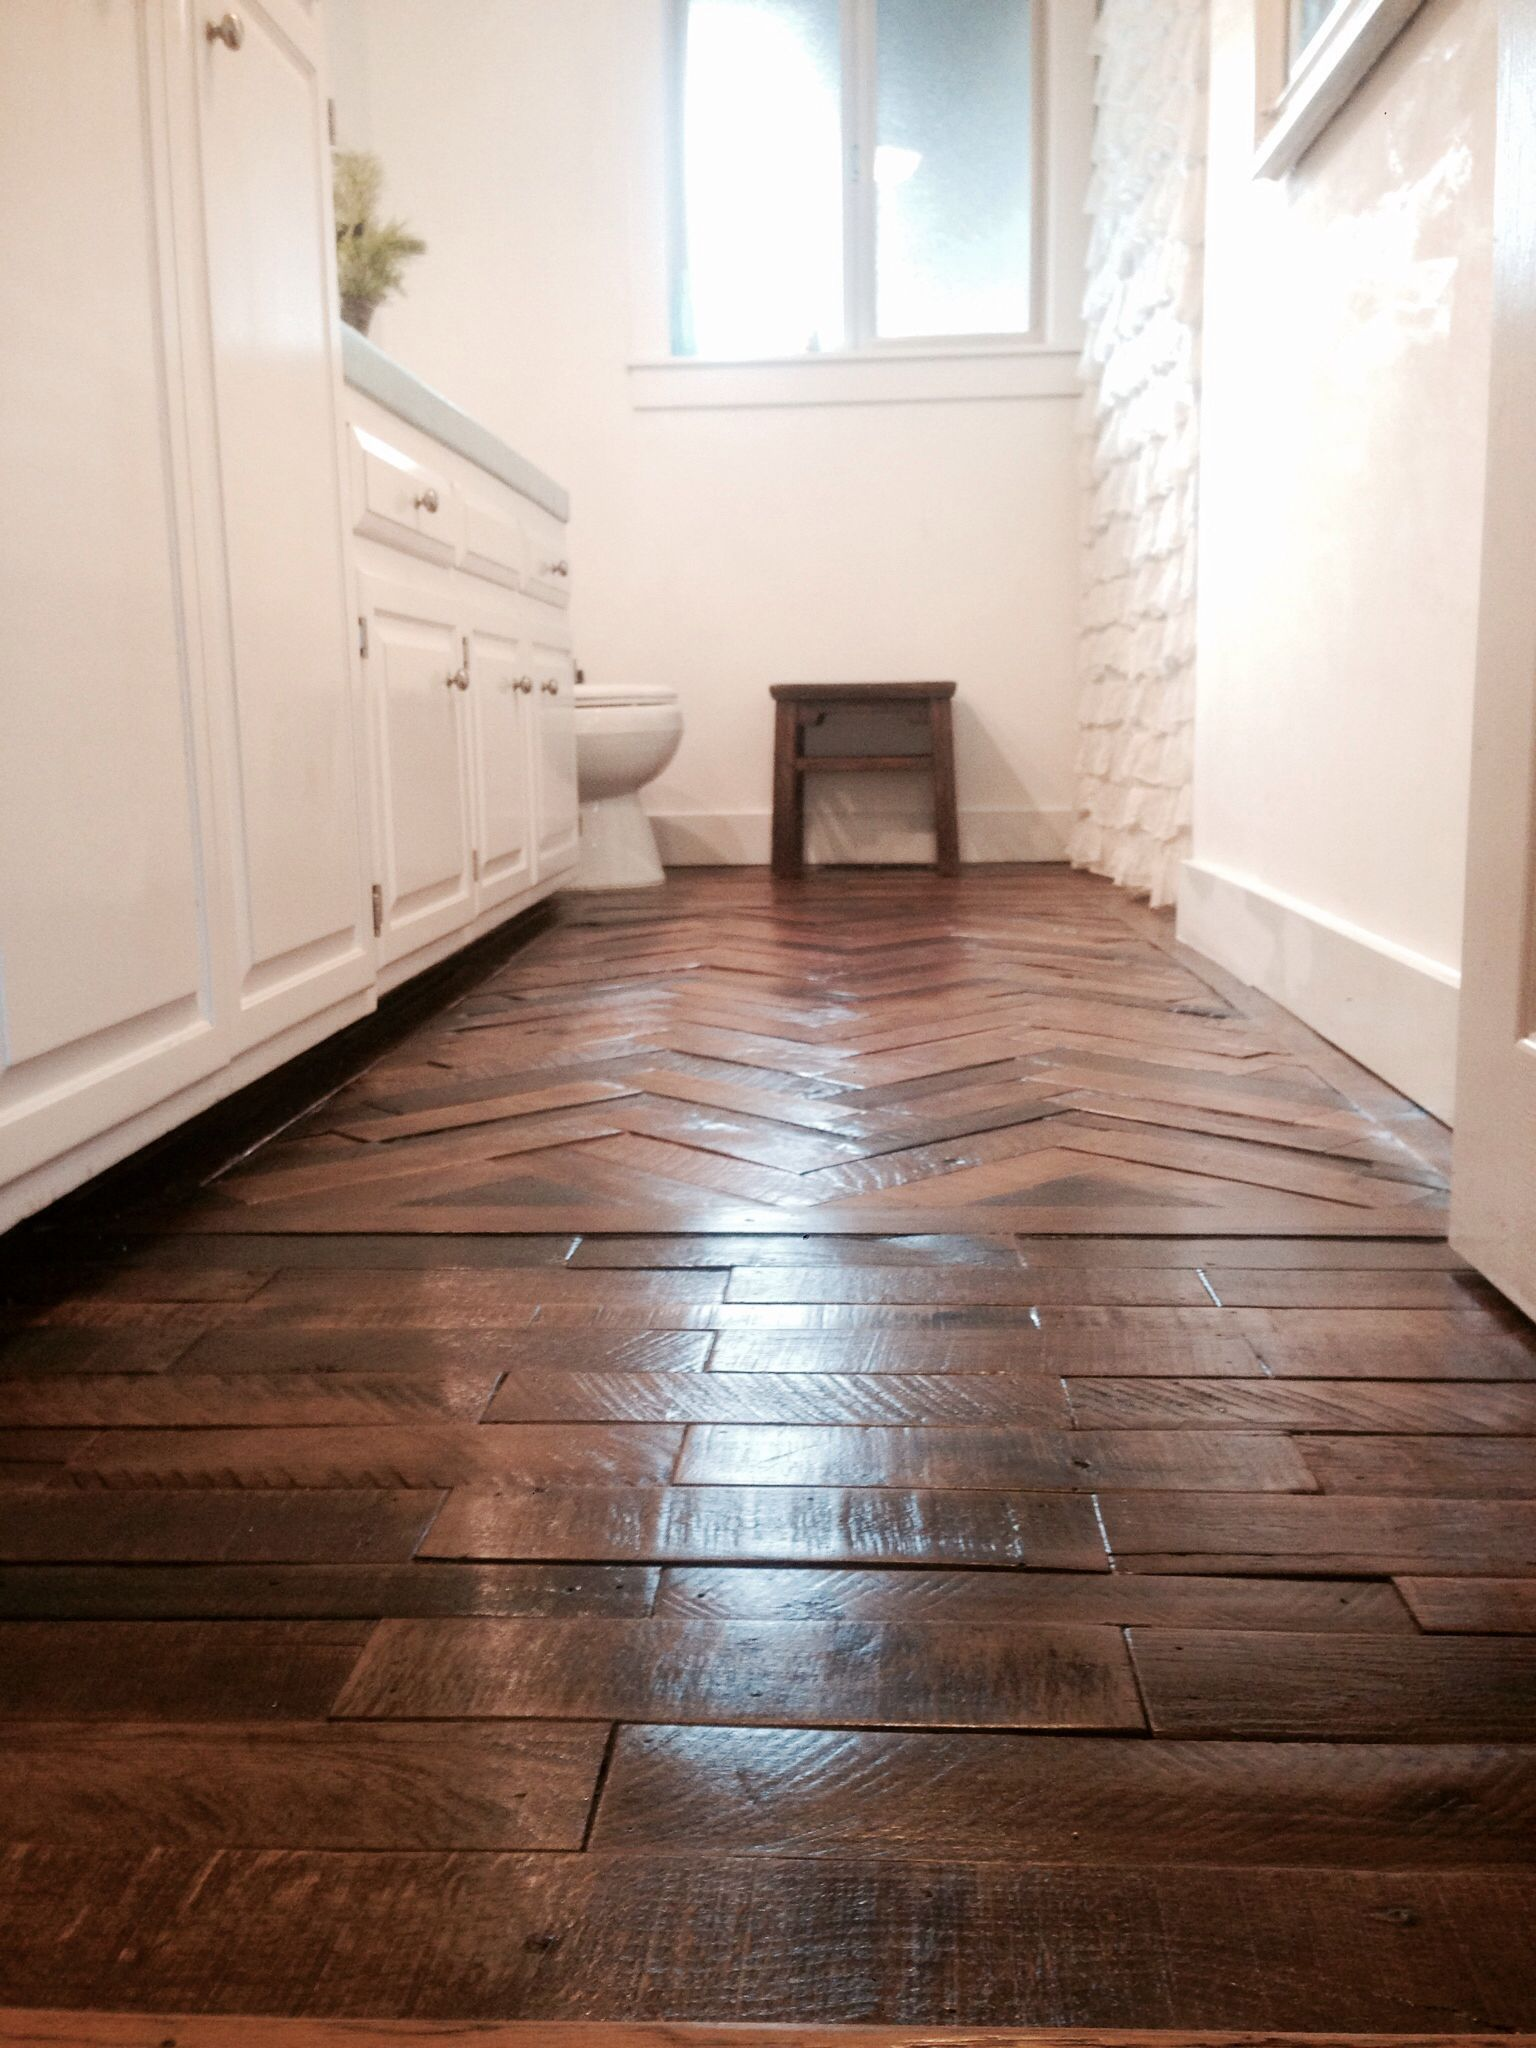 Diy Hardwood Floor another view Wood Floor Made From Reclaimed Shipping Pallets Commissioned